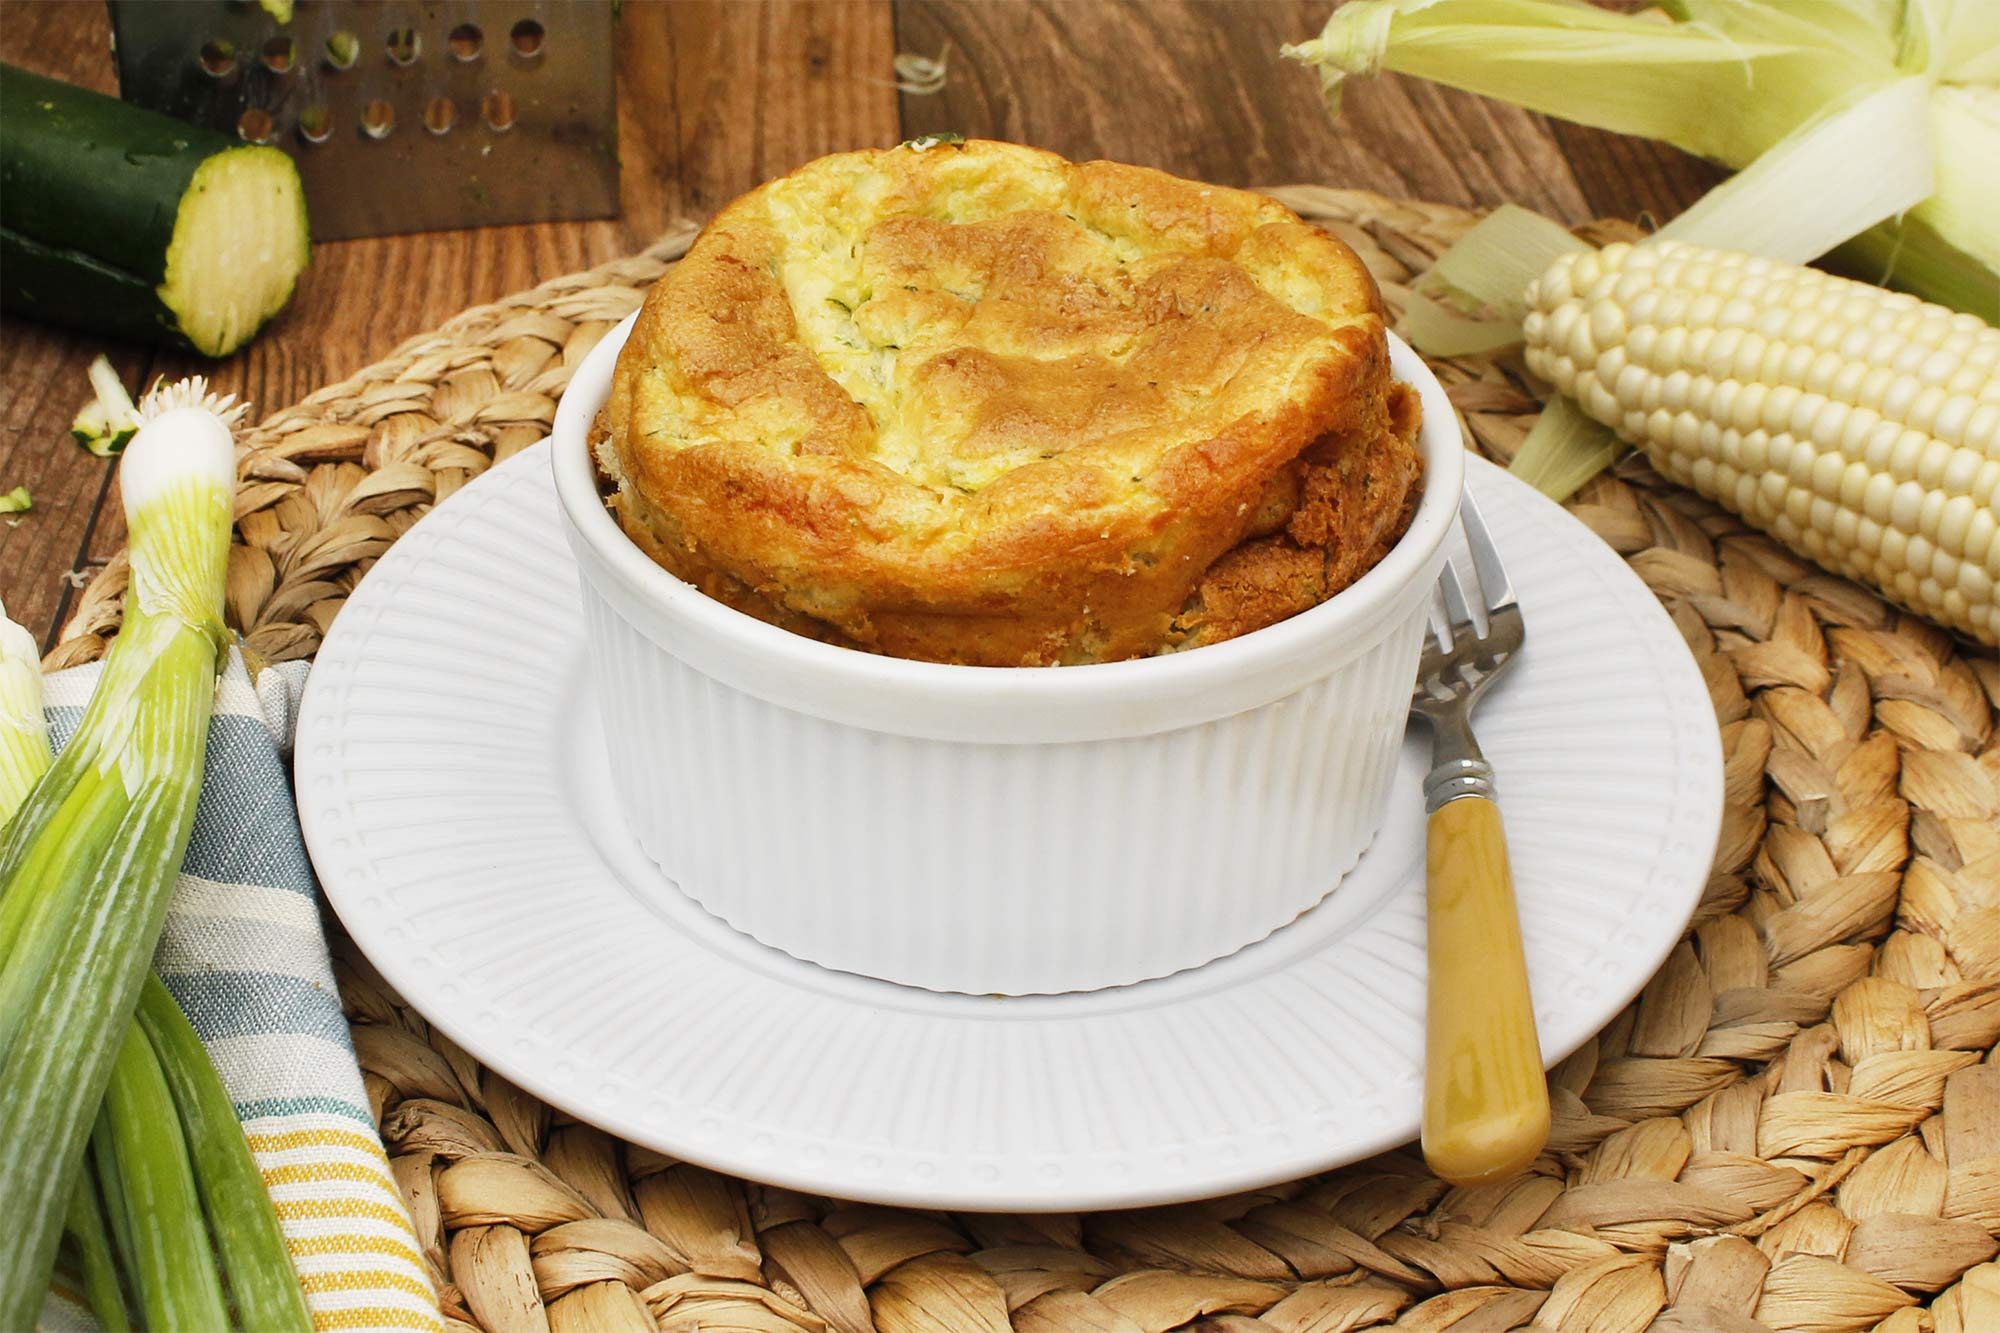 Souffle of zucchini. Cooking recipes 41